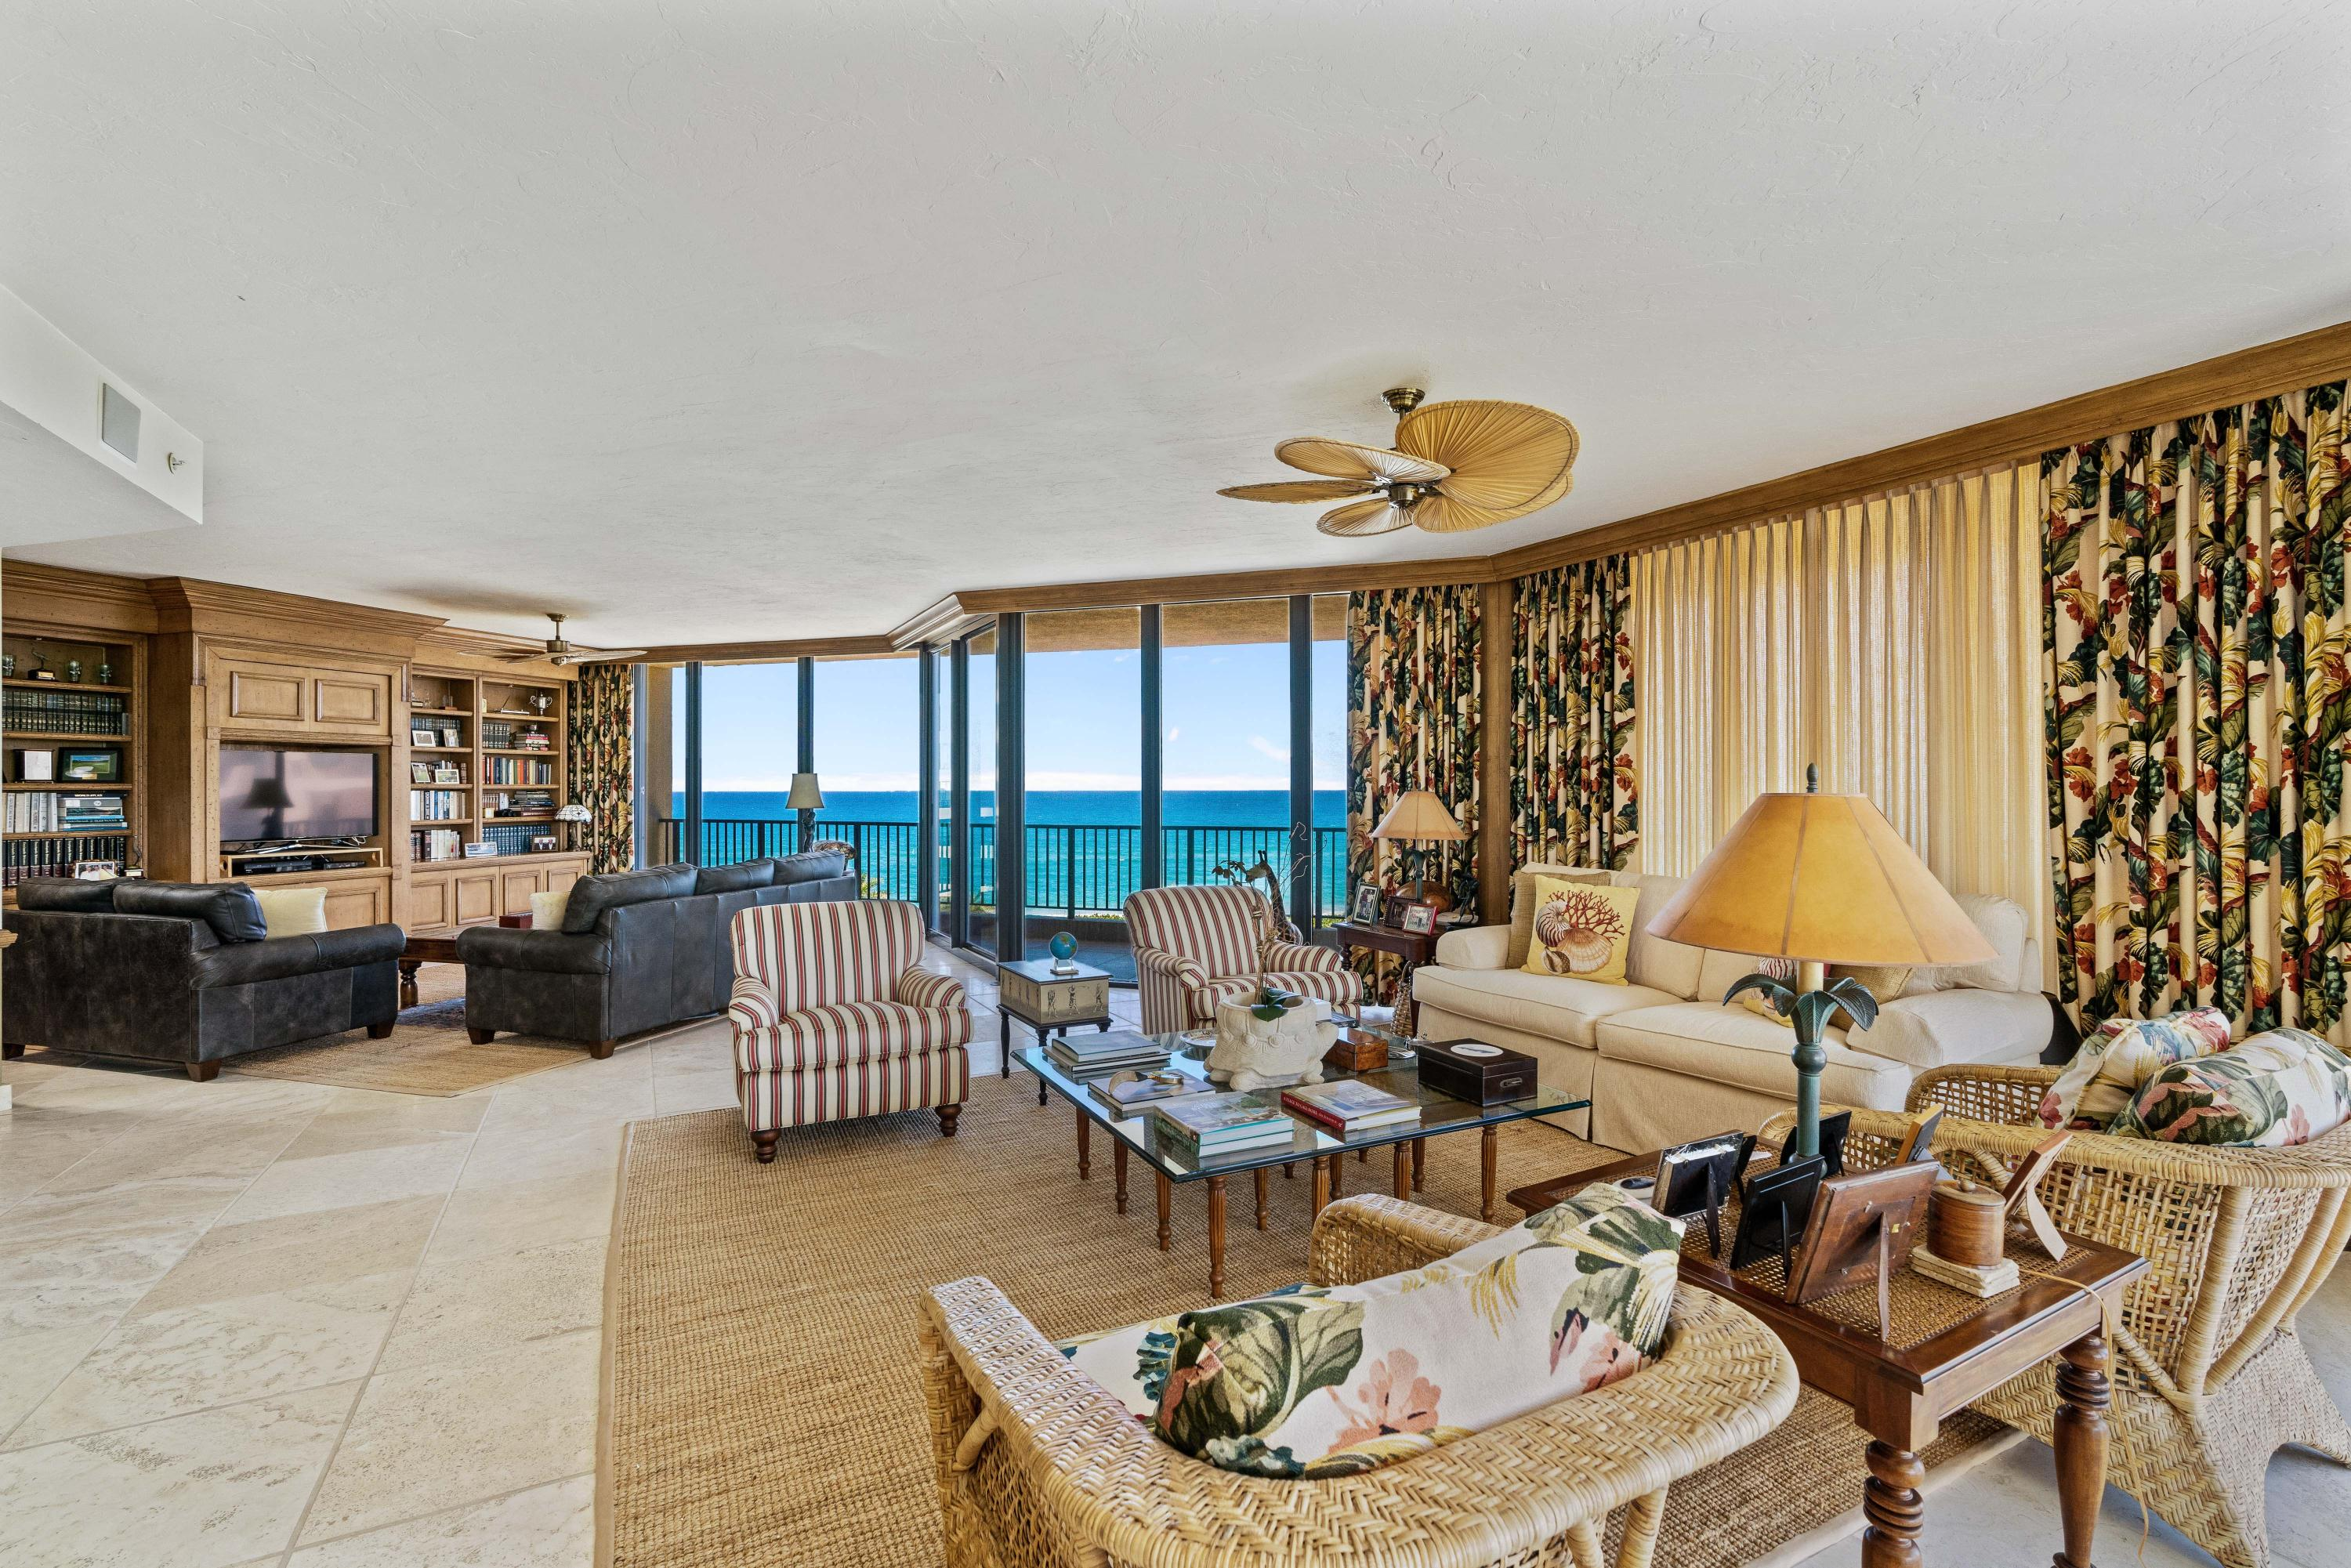 New Home for sale at 570 Ocean Drive in Juno Beach